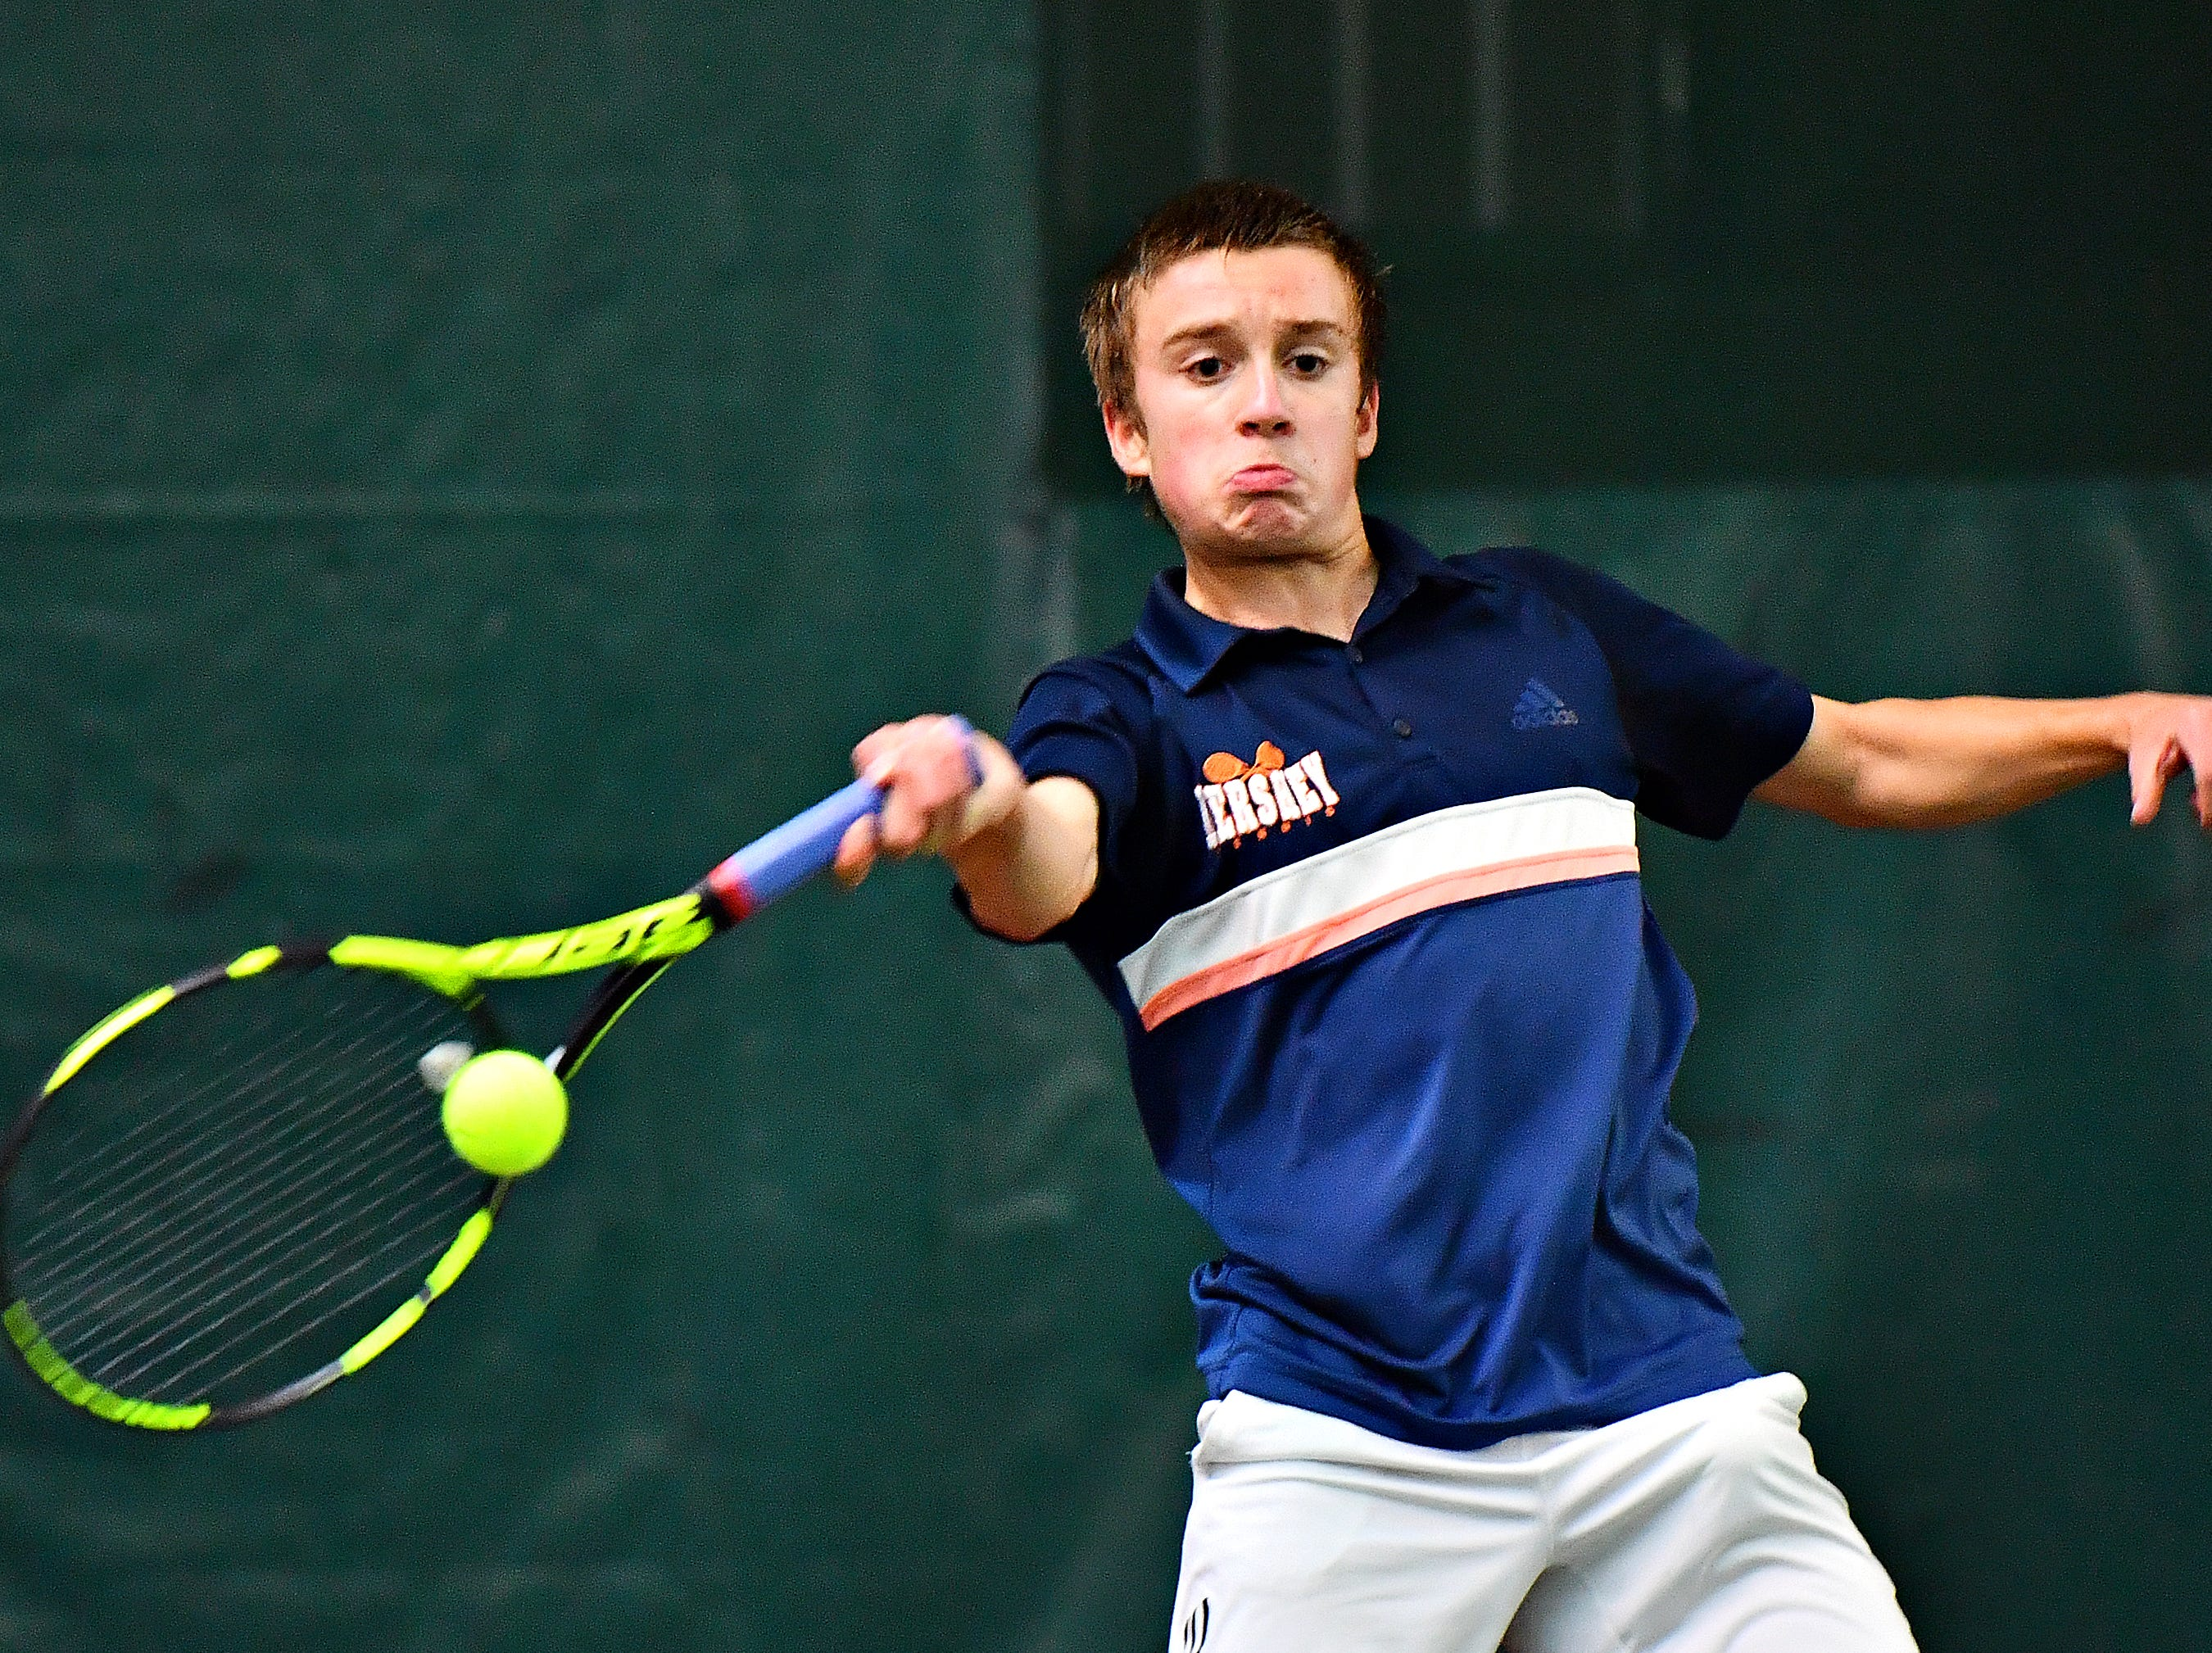 Hershey's Andreas Wingert returns the ball to Dallastown's Holden Koons during District III, Class 3-A boys' tennis team championship action at Hershey Raquet Club in Hershey, Thursday, May 9, 2019. Koons would win the match and Hershey would win the title. Dawn J. Sagert photo